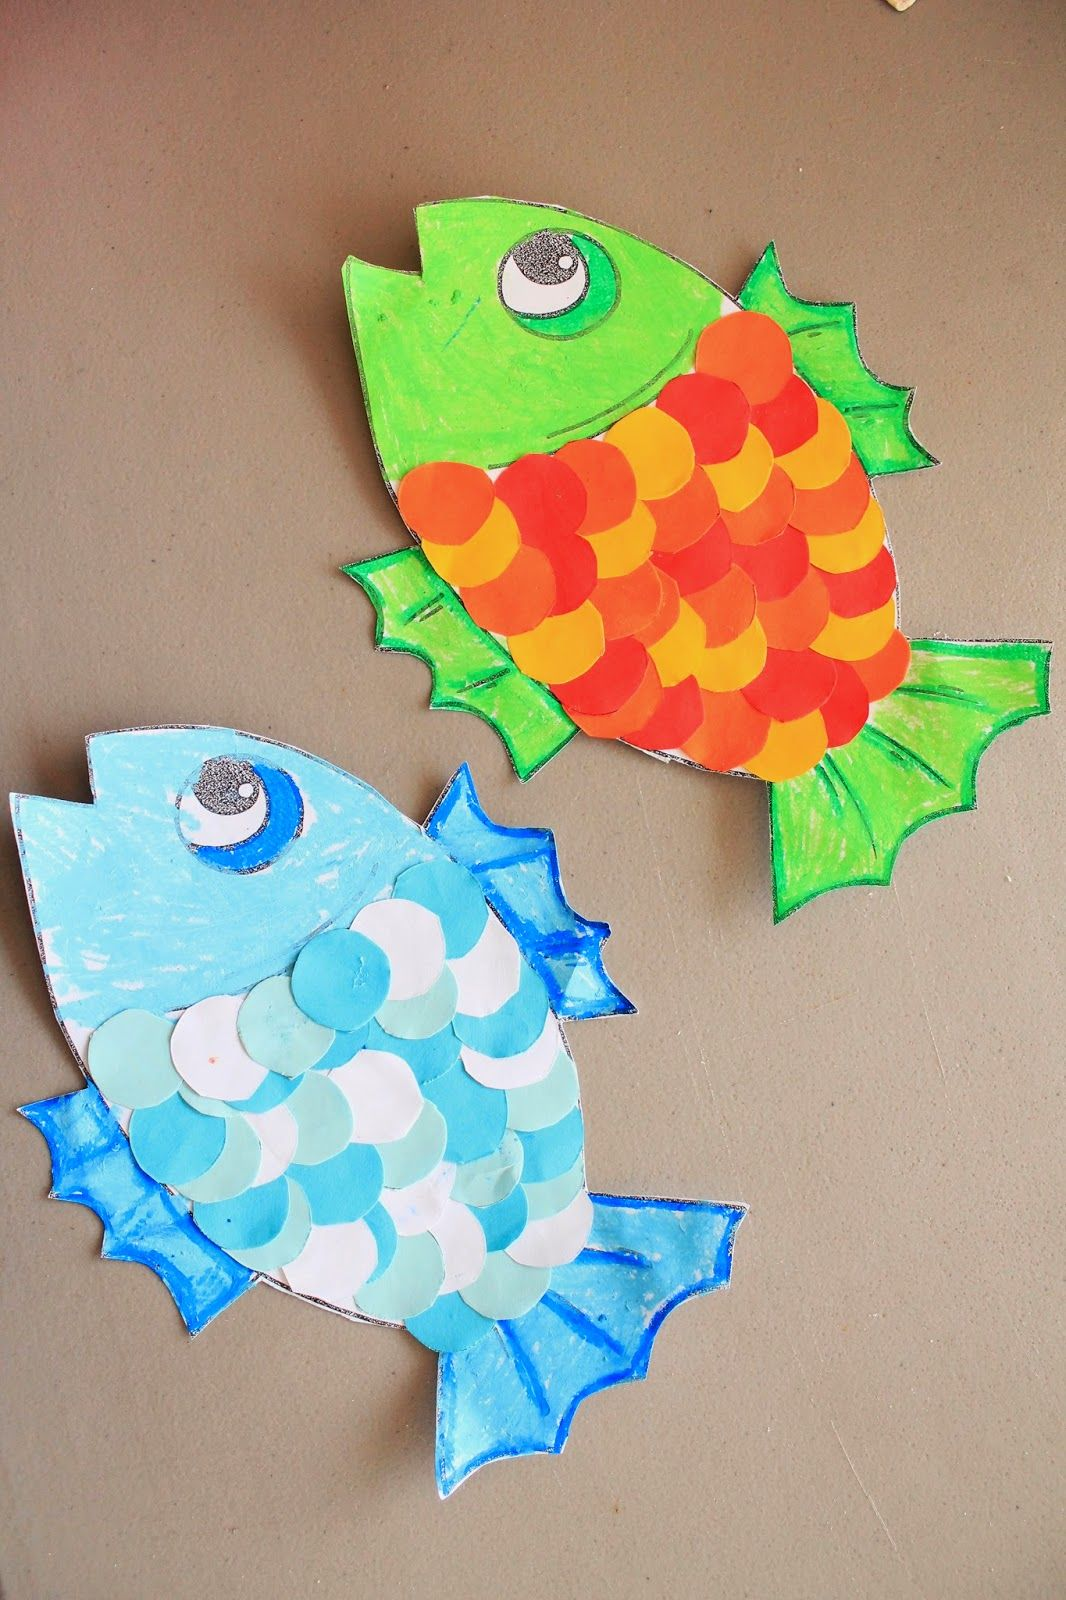 Pin On Art And Crafts Creative Activities Arte Y